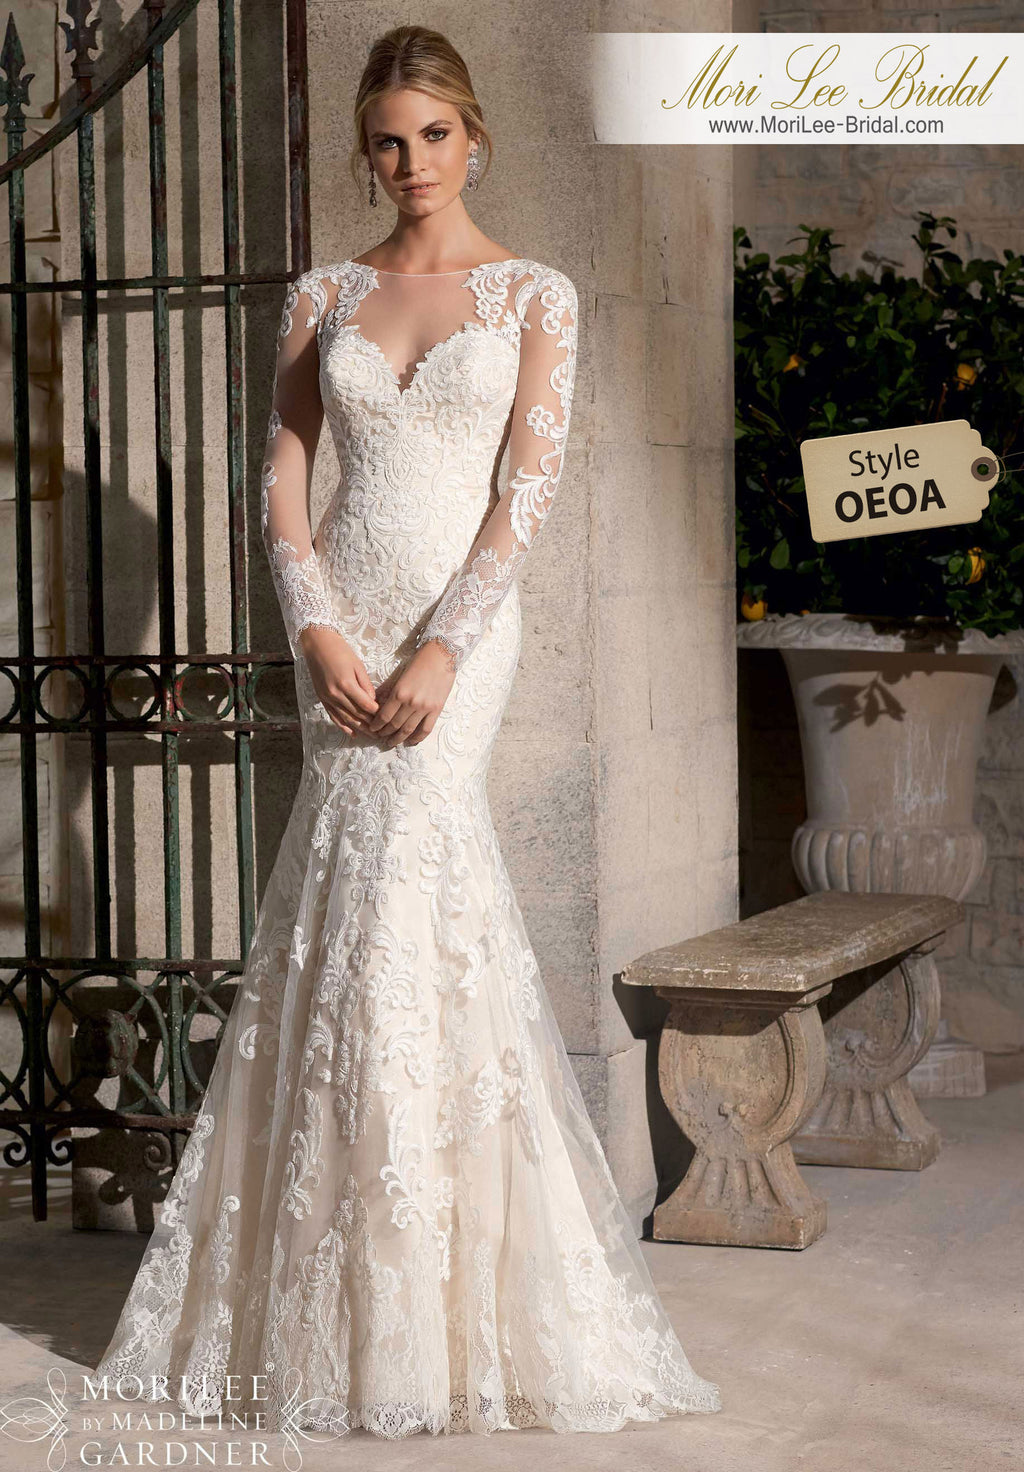 OEOA - Mori Lee Bridal